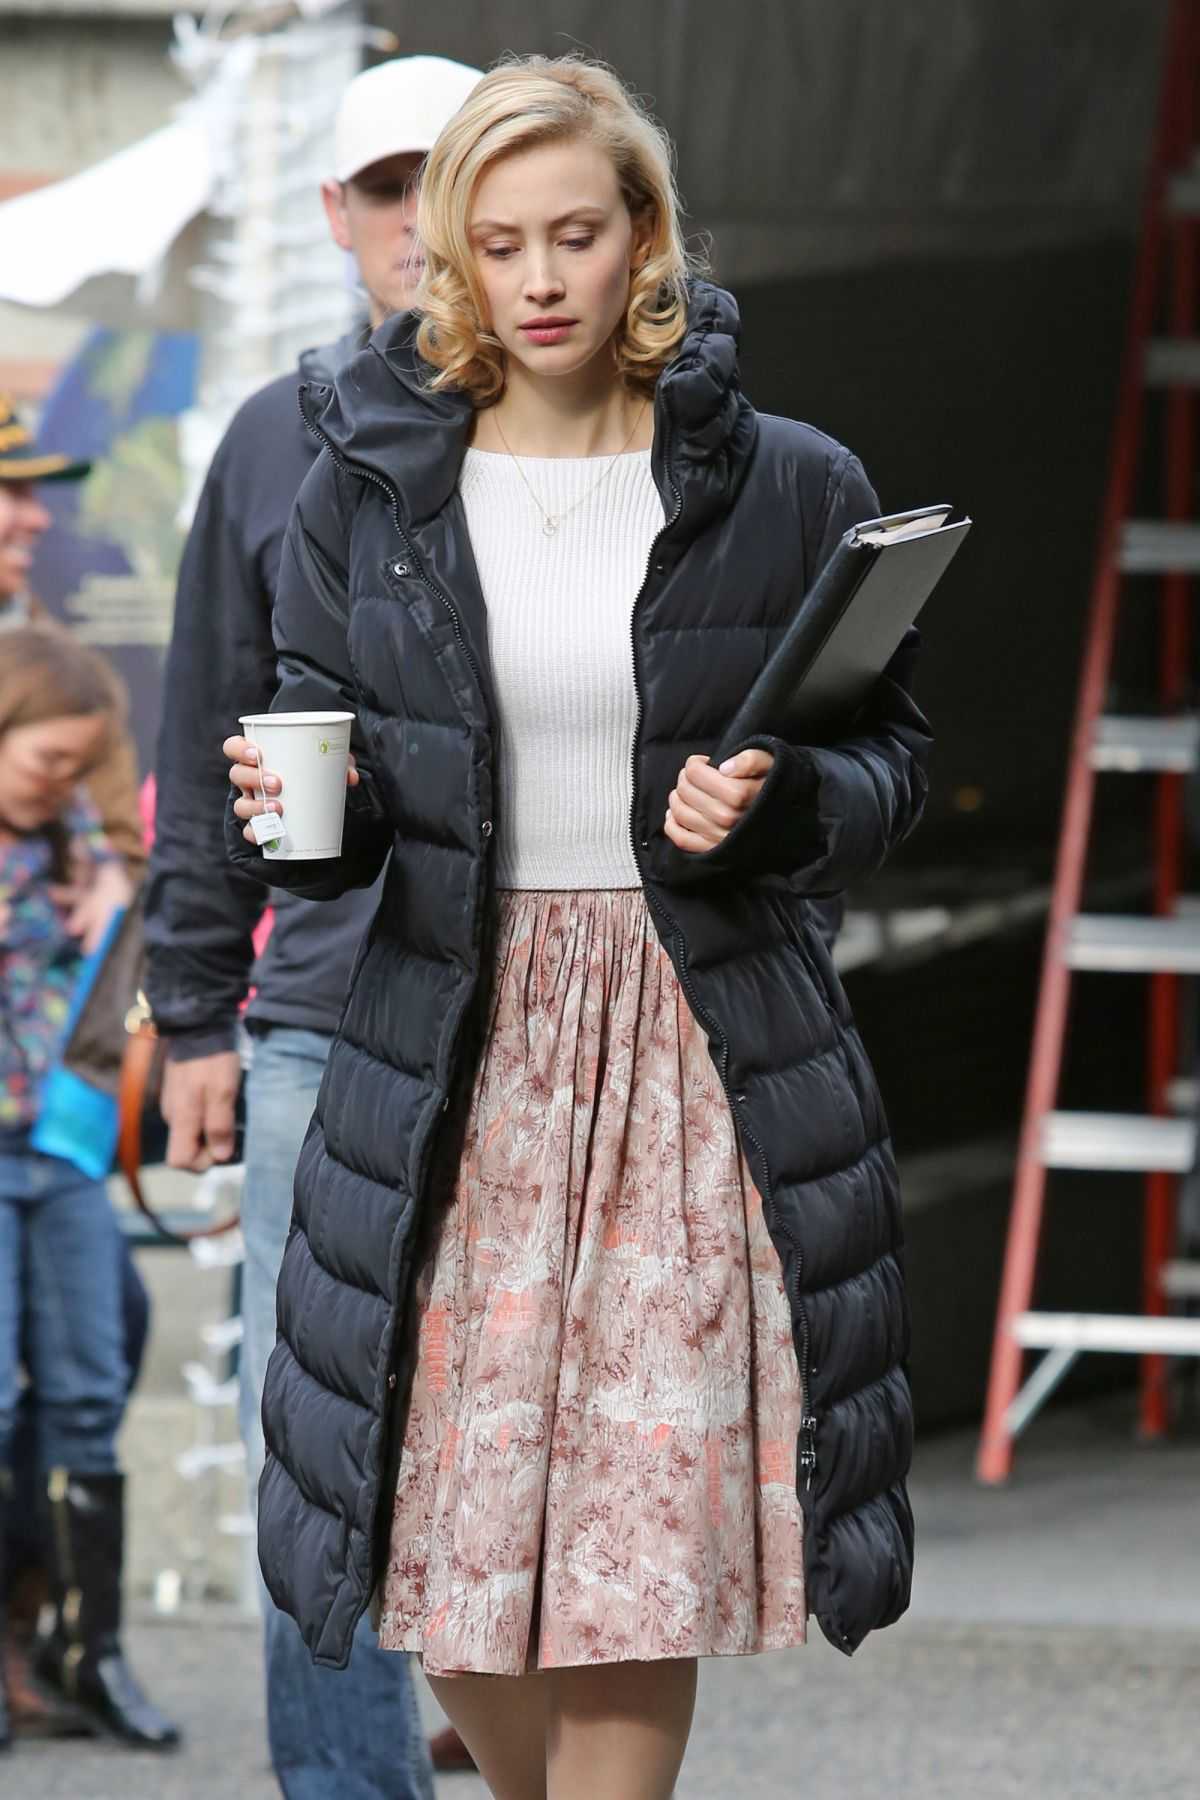 SARAH GADON at The 9th Life of Louis Drax Set in Vancouver